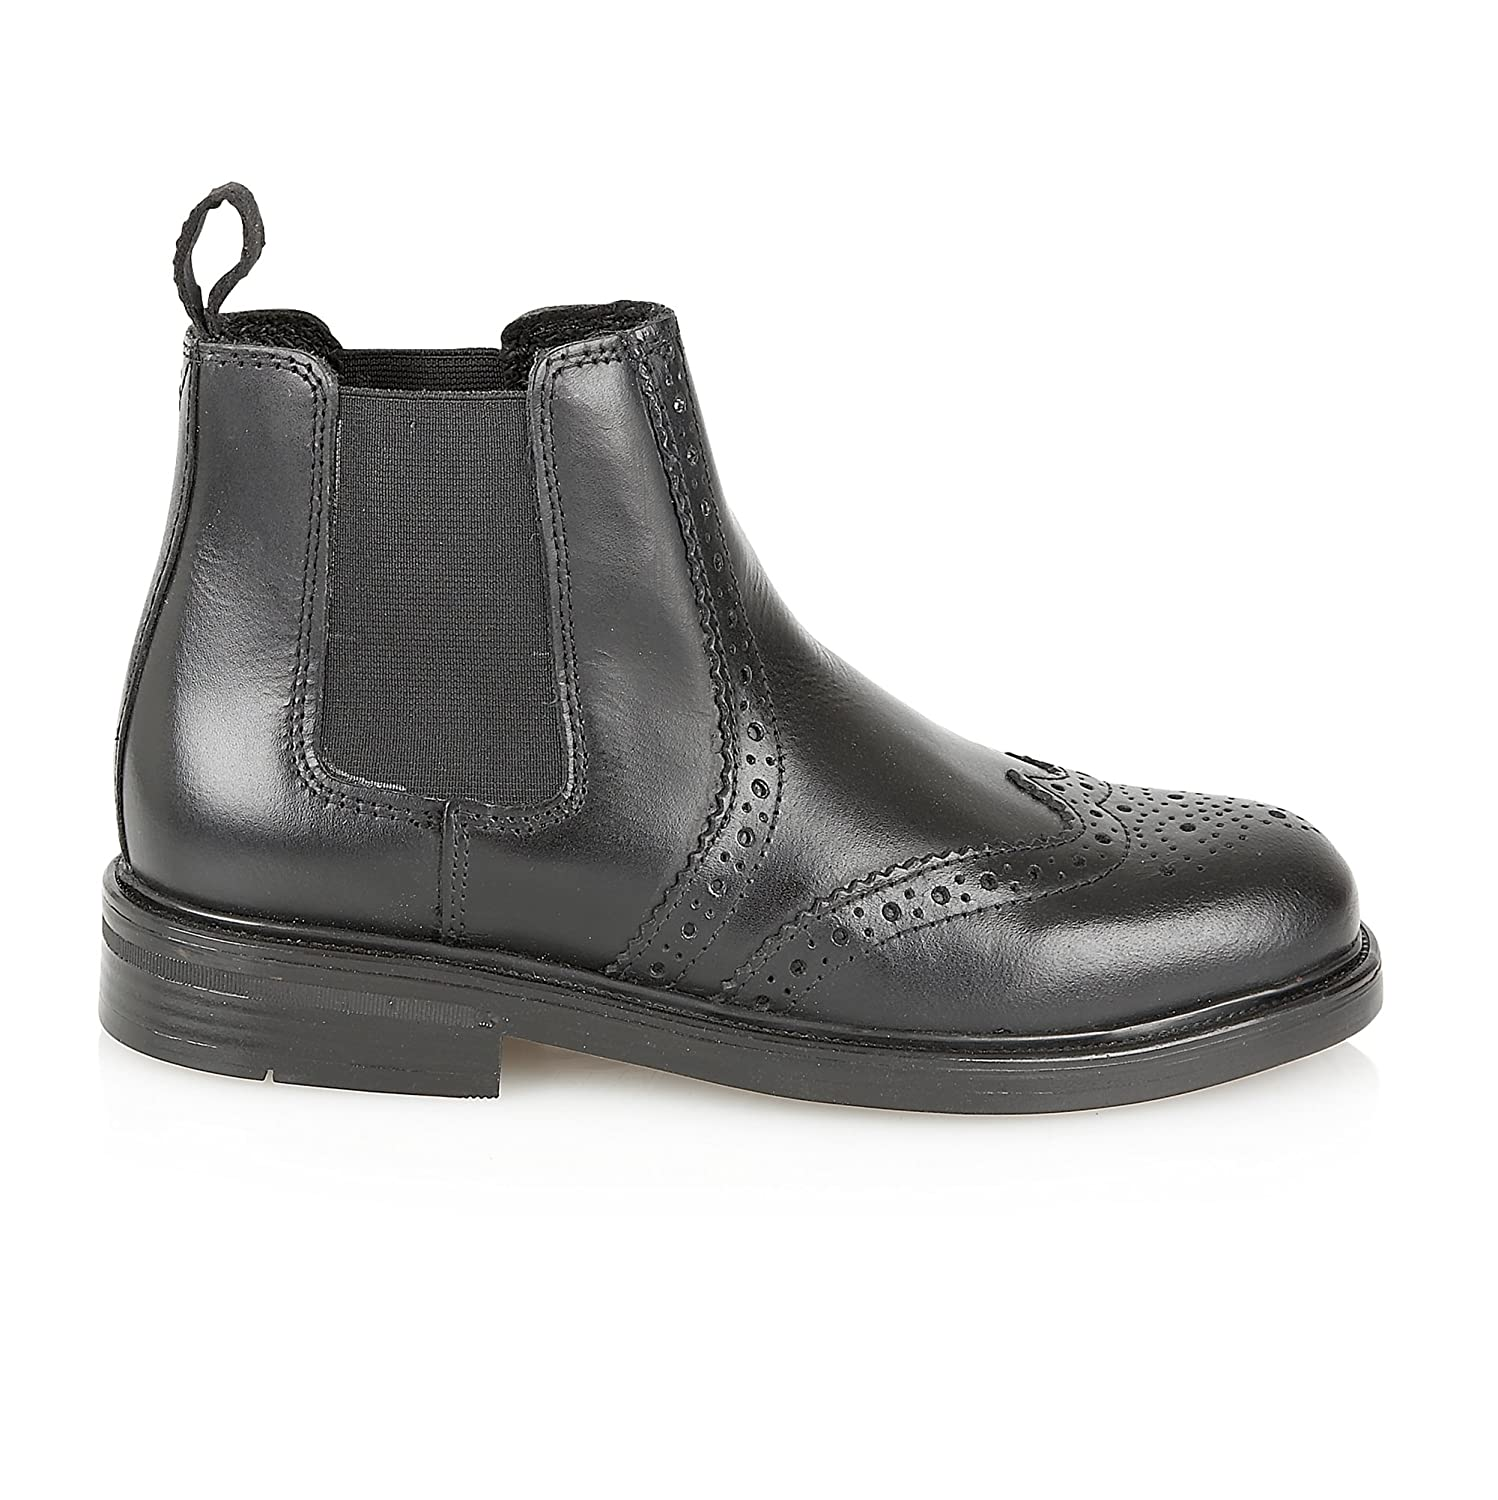 Private Brand Boys Chelsea Ankle Boots Strong Souls School Real Leather  Brogue Derby Shoes Pull On Size  Amazon.co.uk  Shoes   Bags d2d38d4bb